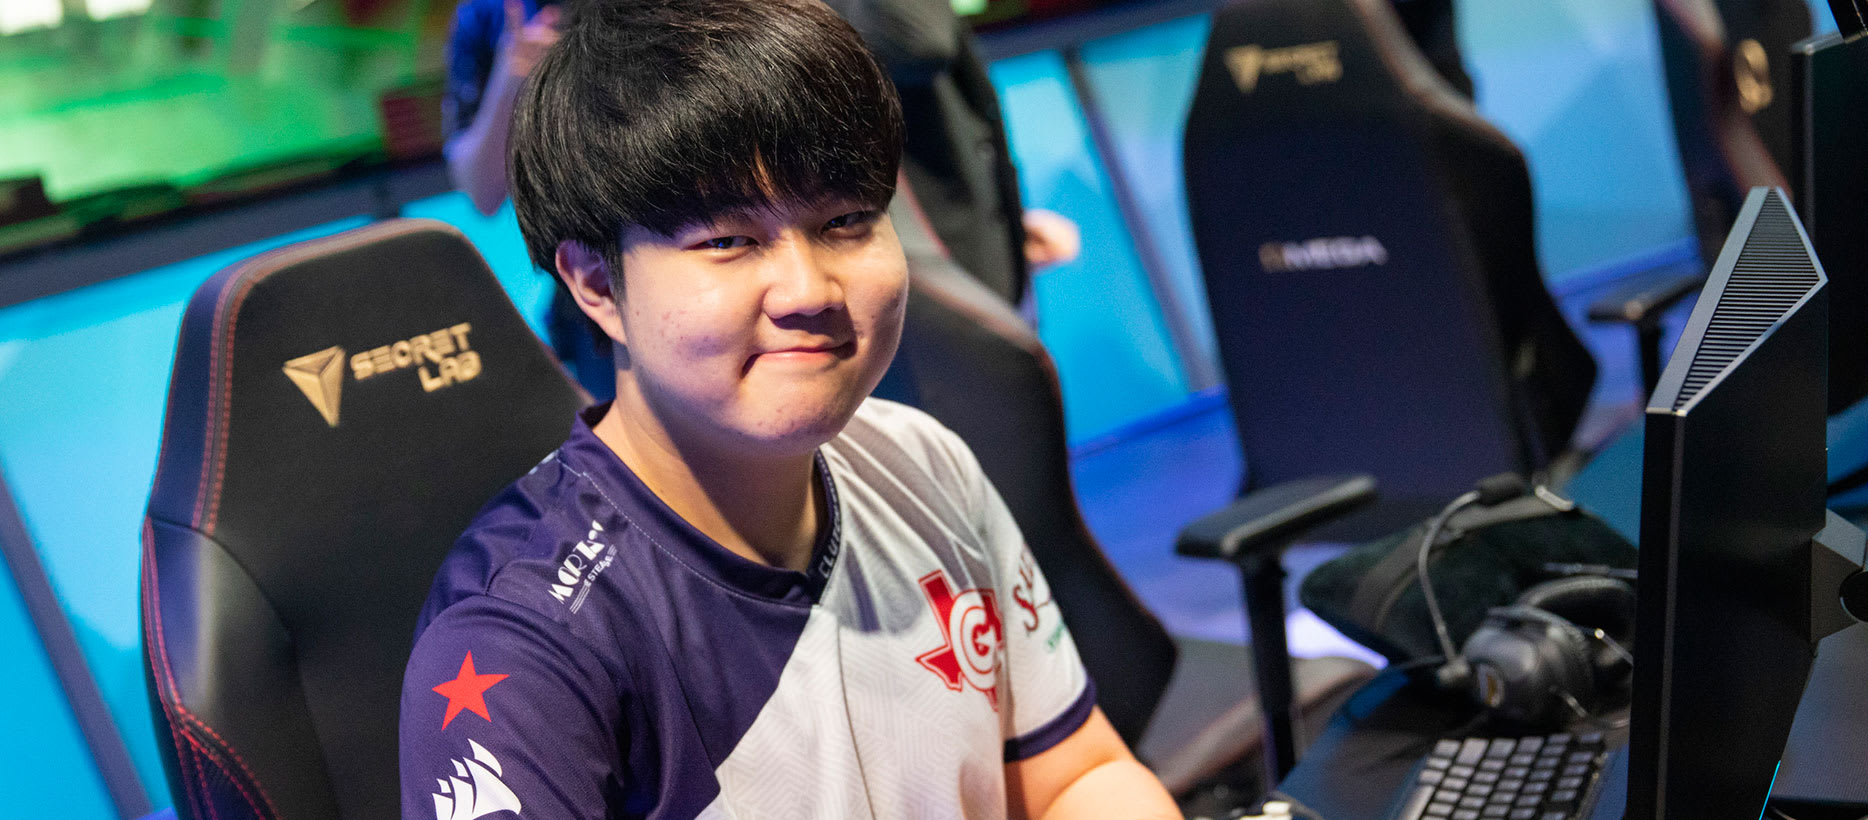 Huni of Clutch Gaming. League of Legends.